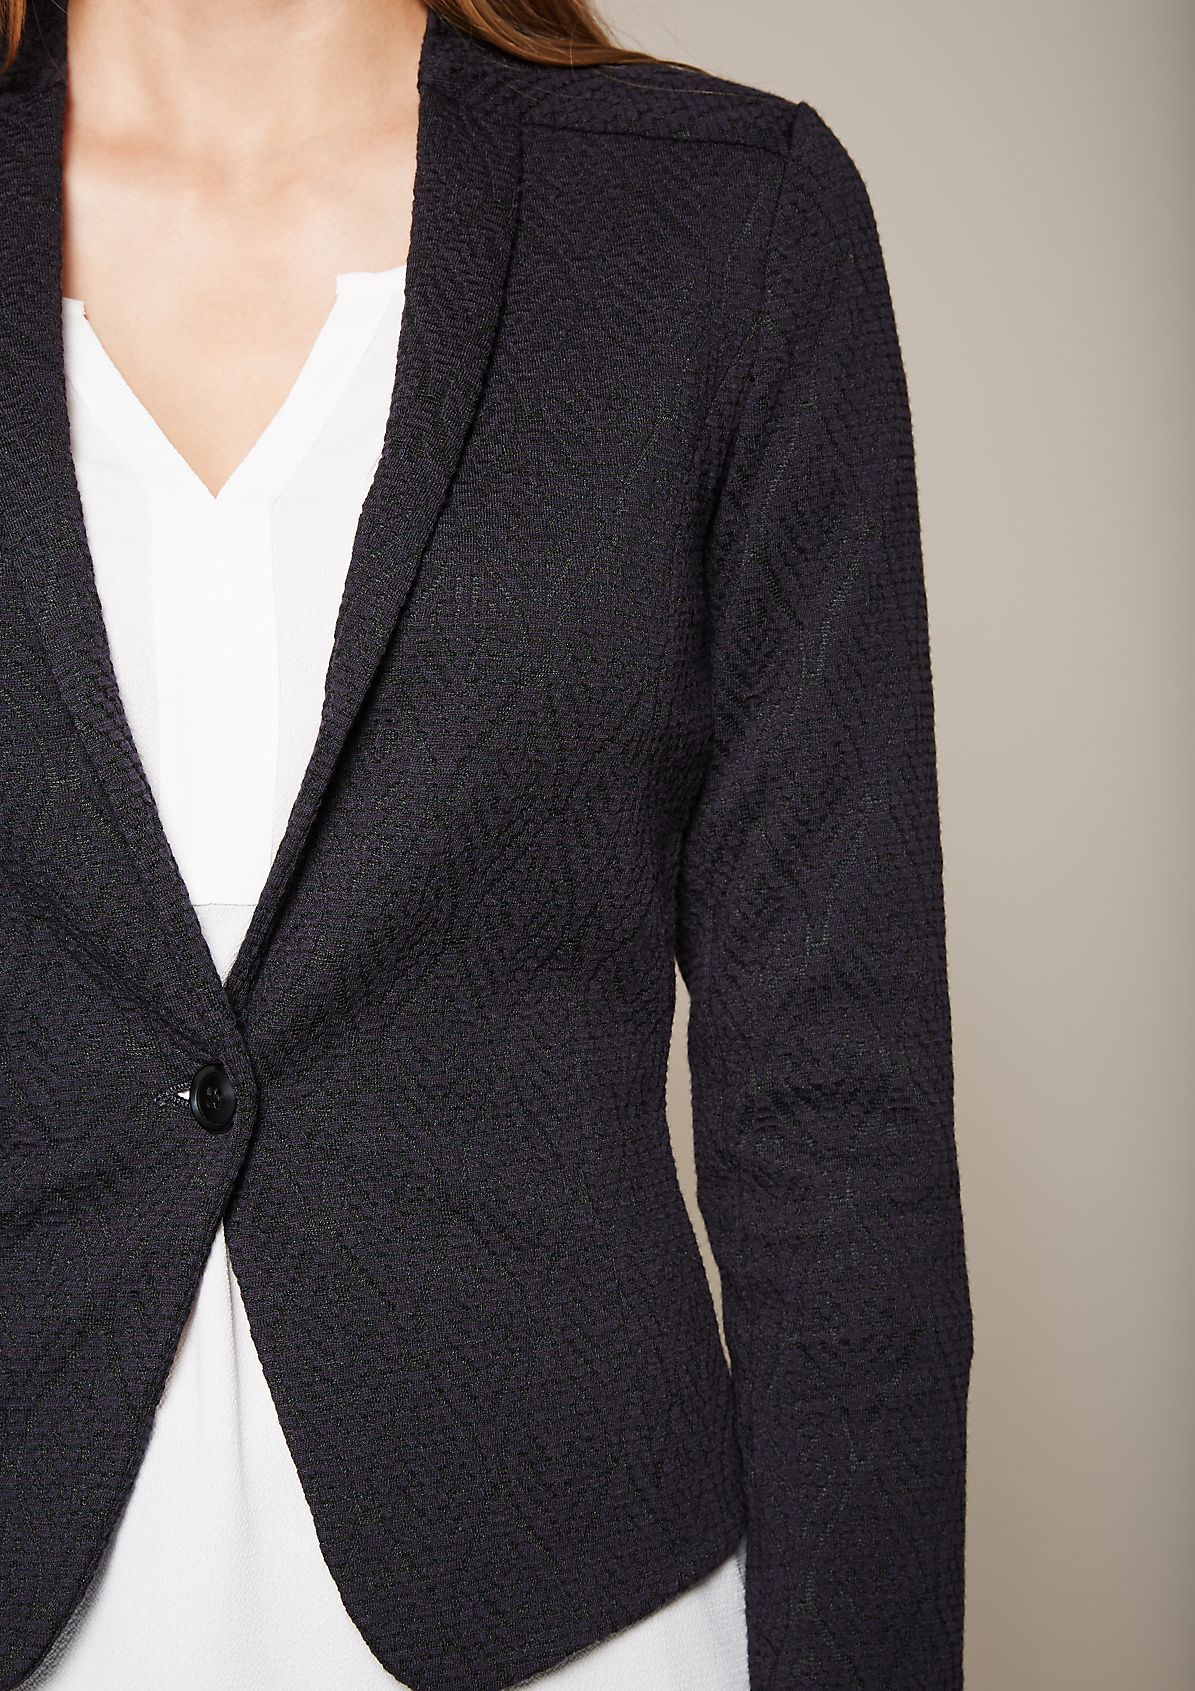 Fine blazer with an attractive jacquard pattern from s.Oliver